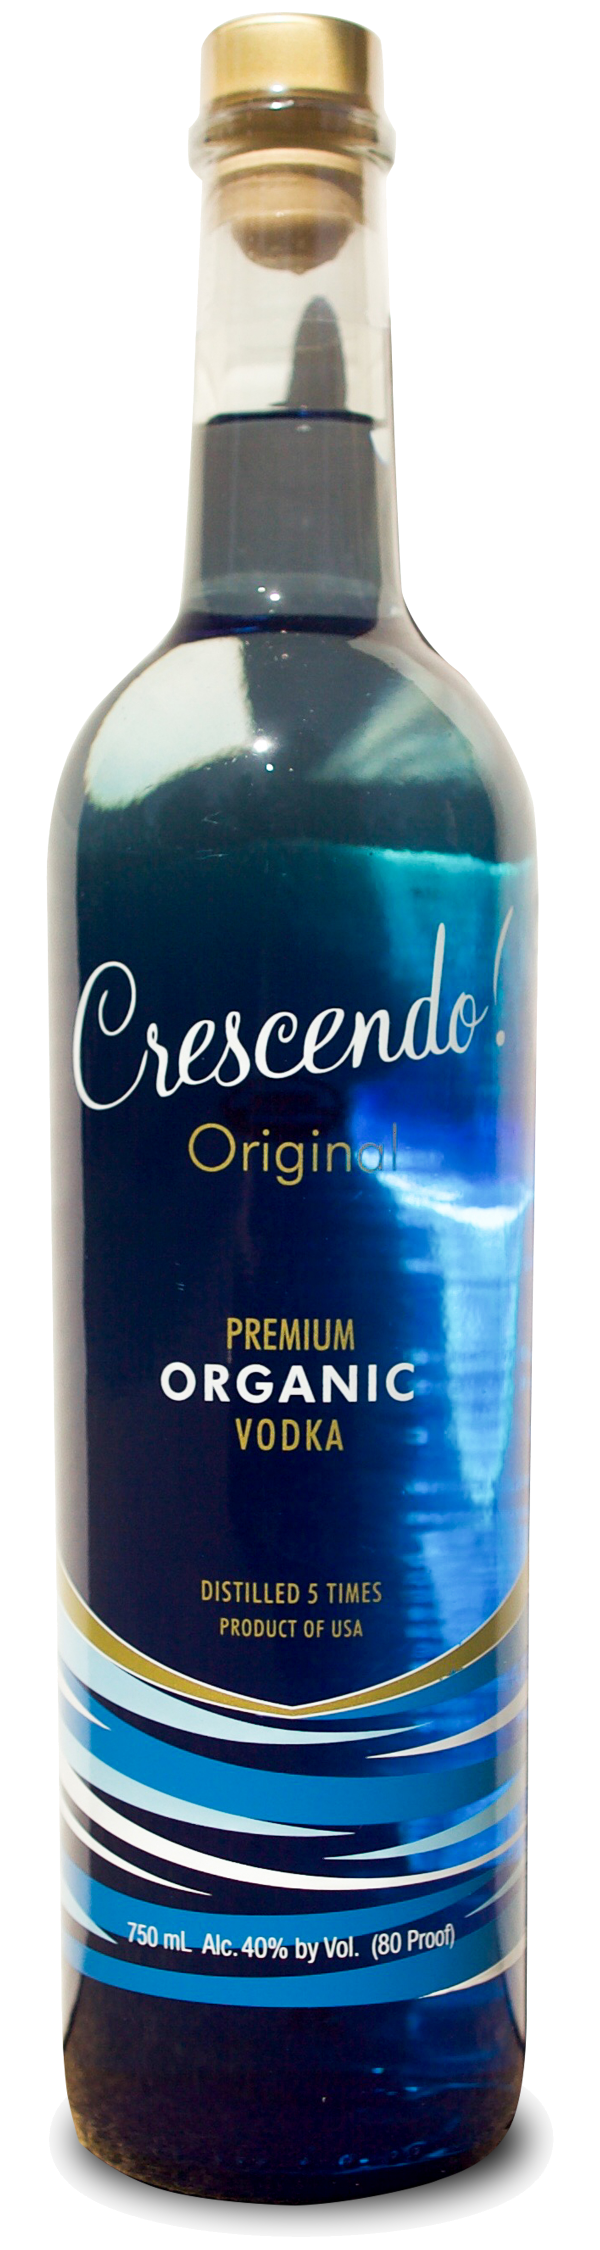 Crescendo Organic Vodka